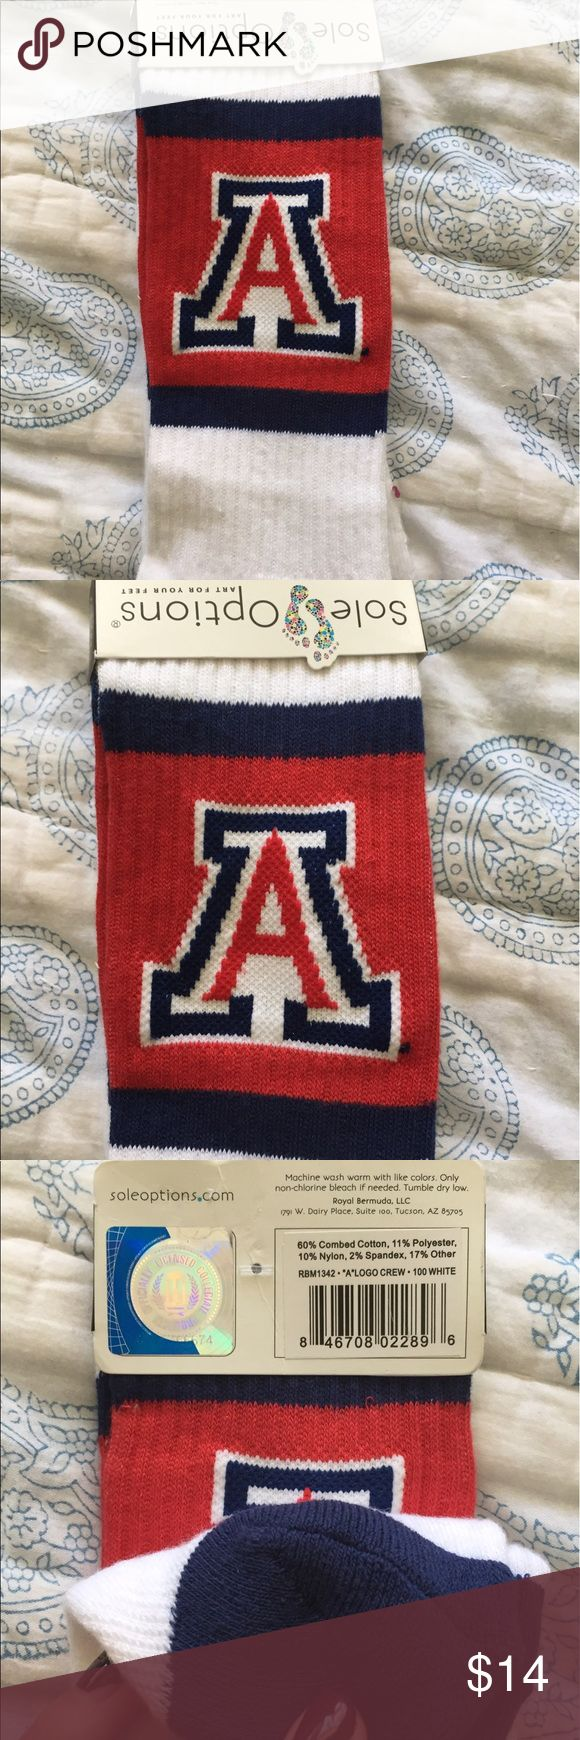 NWT University of Arizona midshin tailgate socks❤️ NWT authentic University of Arizona long socks, they go to mid shin, perfect with shorts and converse for tailgating season!  Bought at campus store with a few other pairs but never used so brand new with tags still on! Accessories Hosiery & Socks